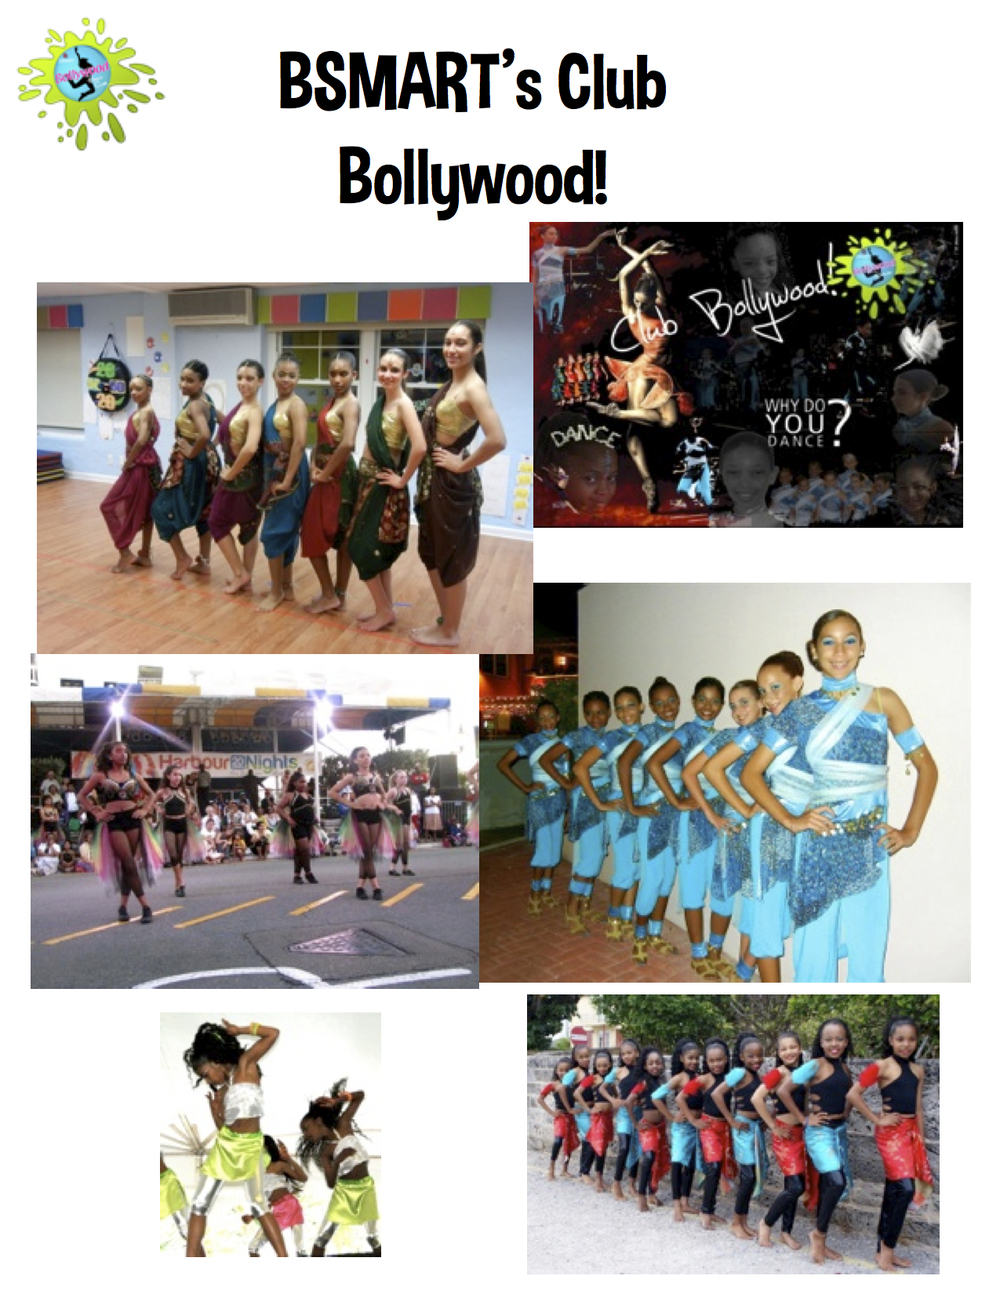 Club Bollywood Images_Apr13.jpg